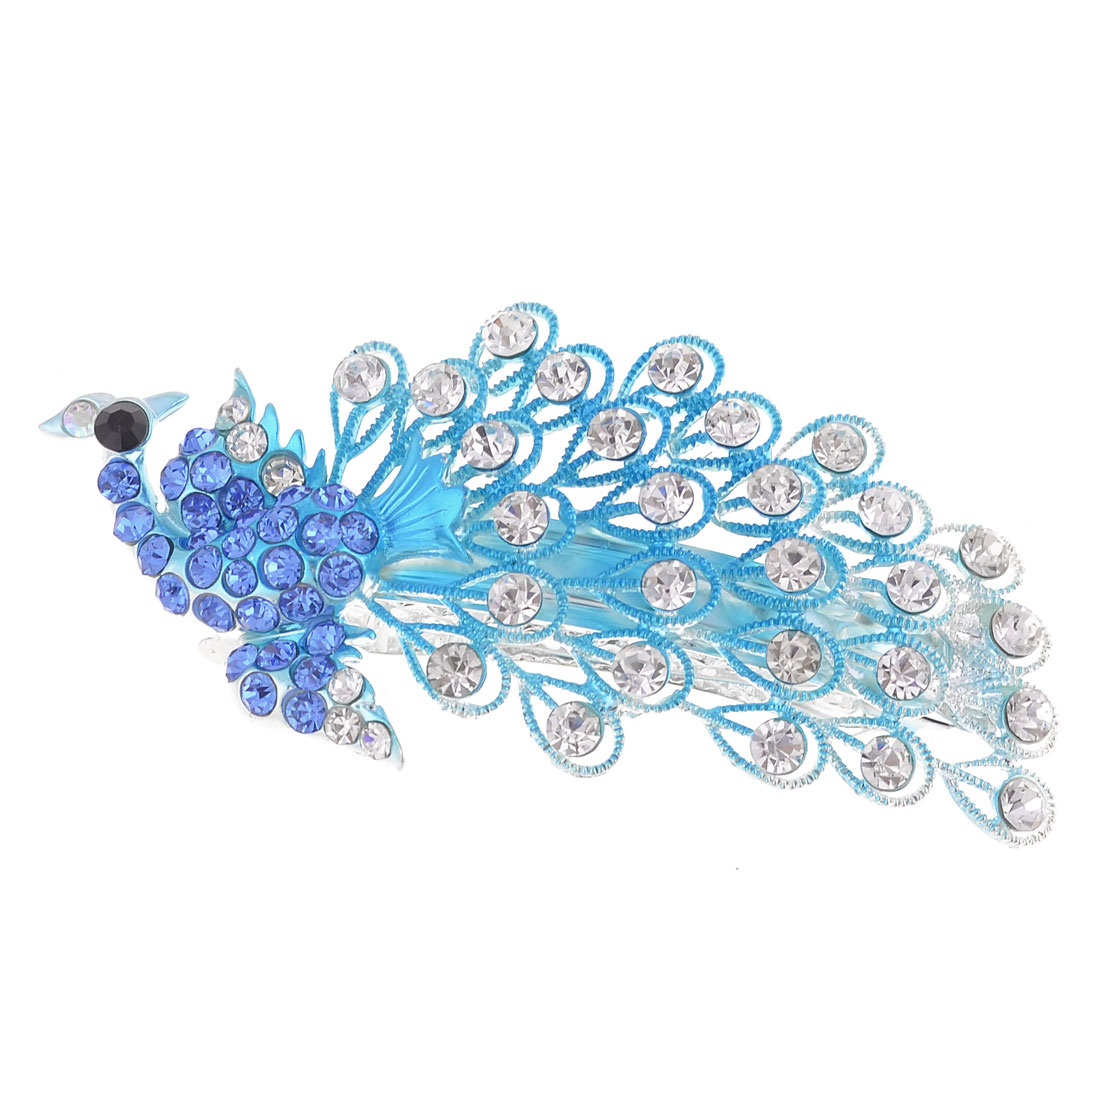 Ladies Teal Blue Peacock Shaped Rhinestone Decor Inlaid French Hair Clip